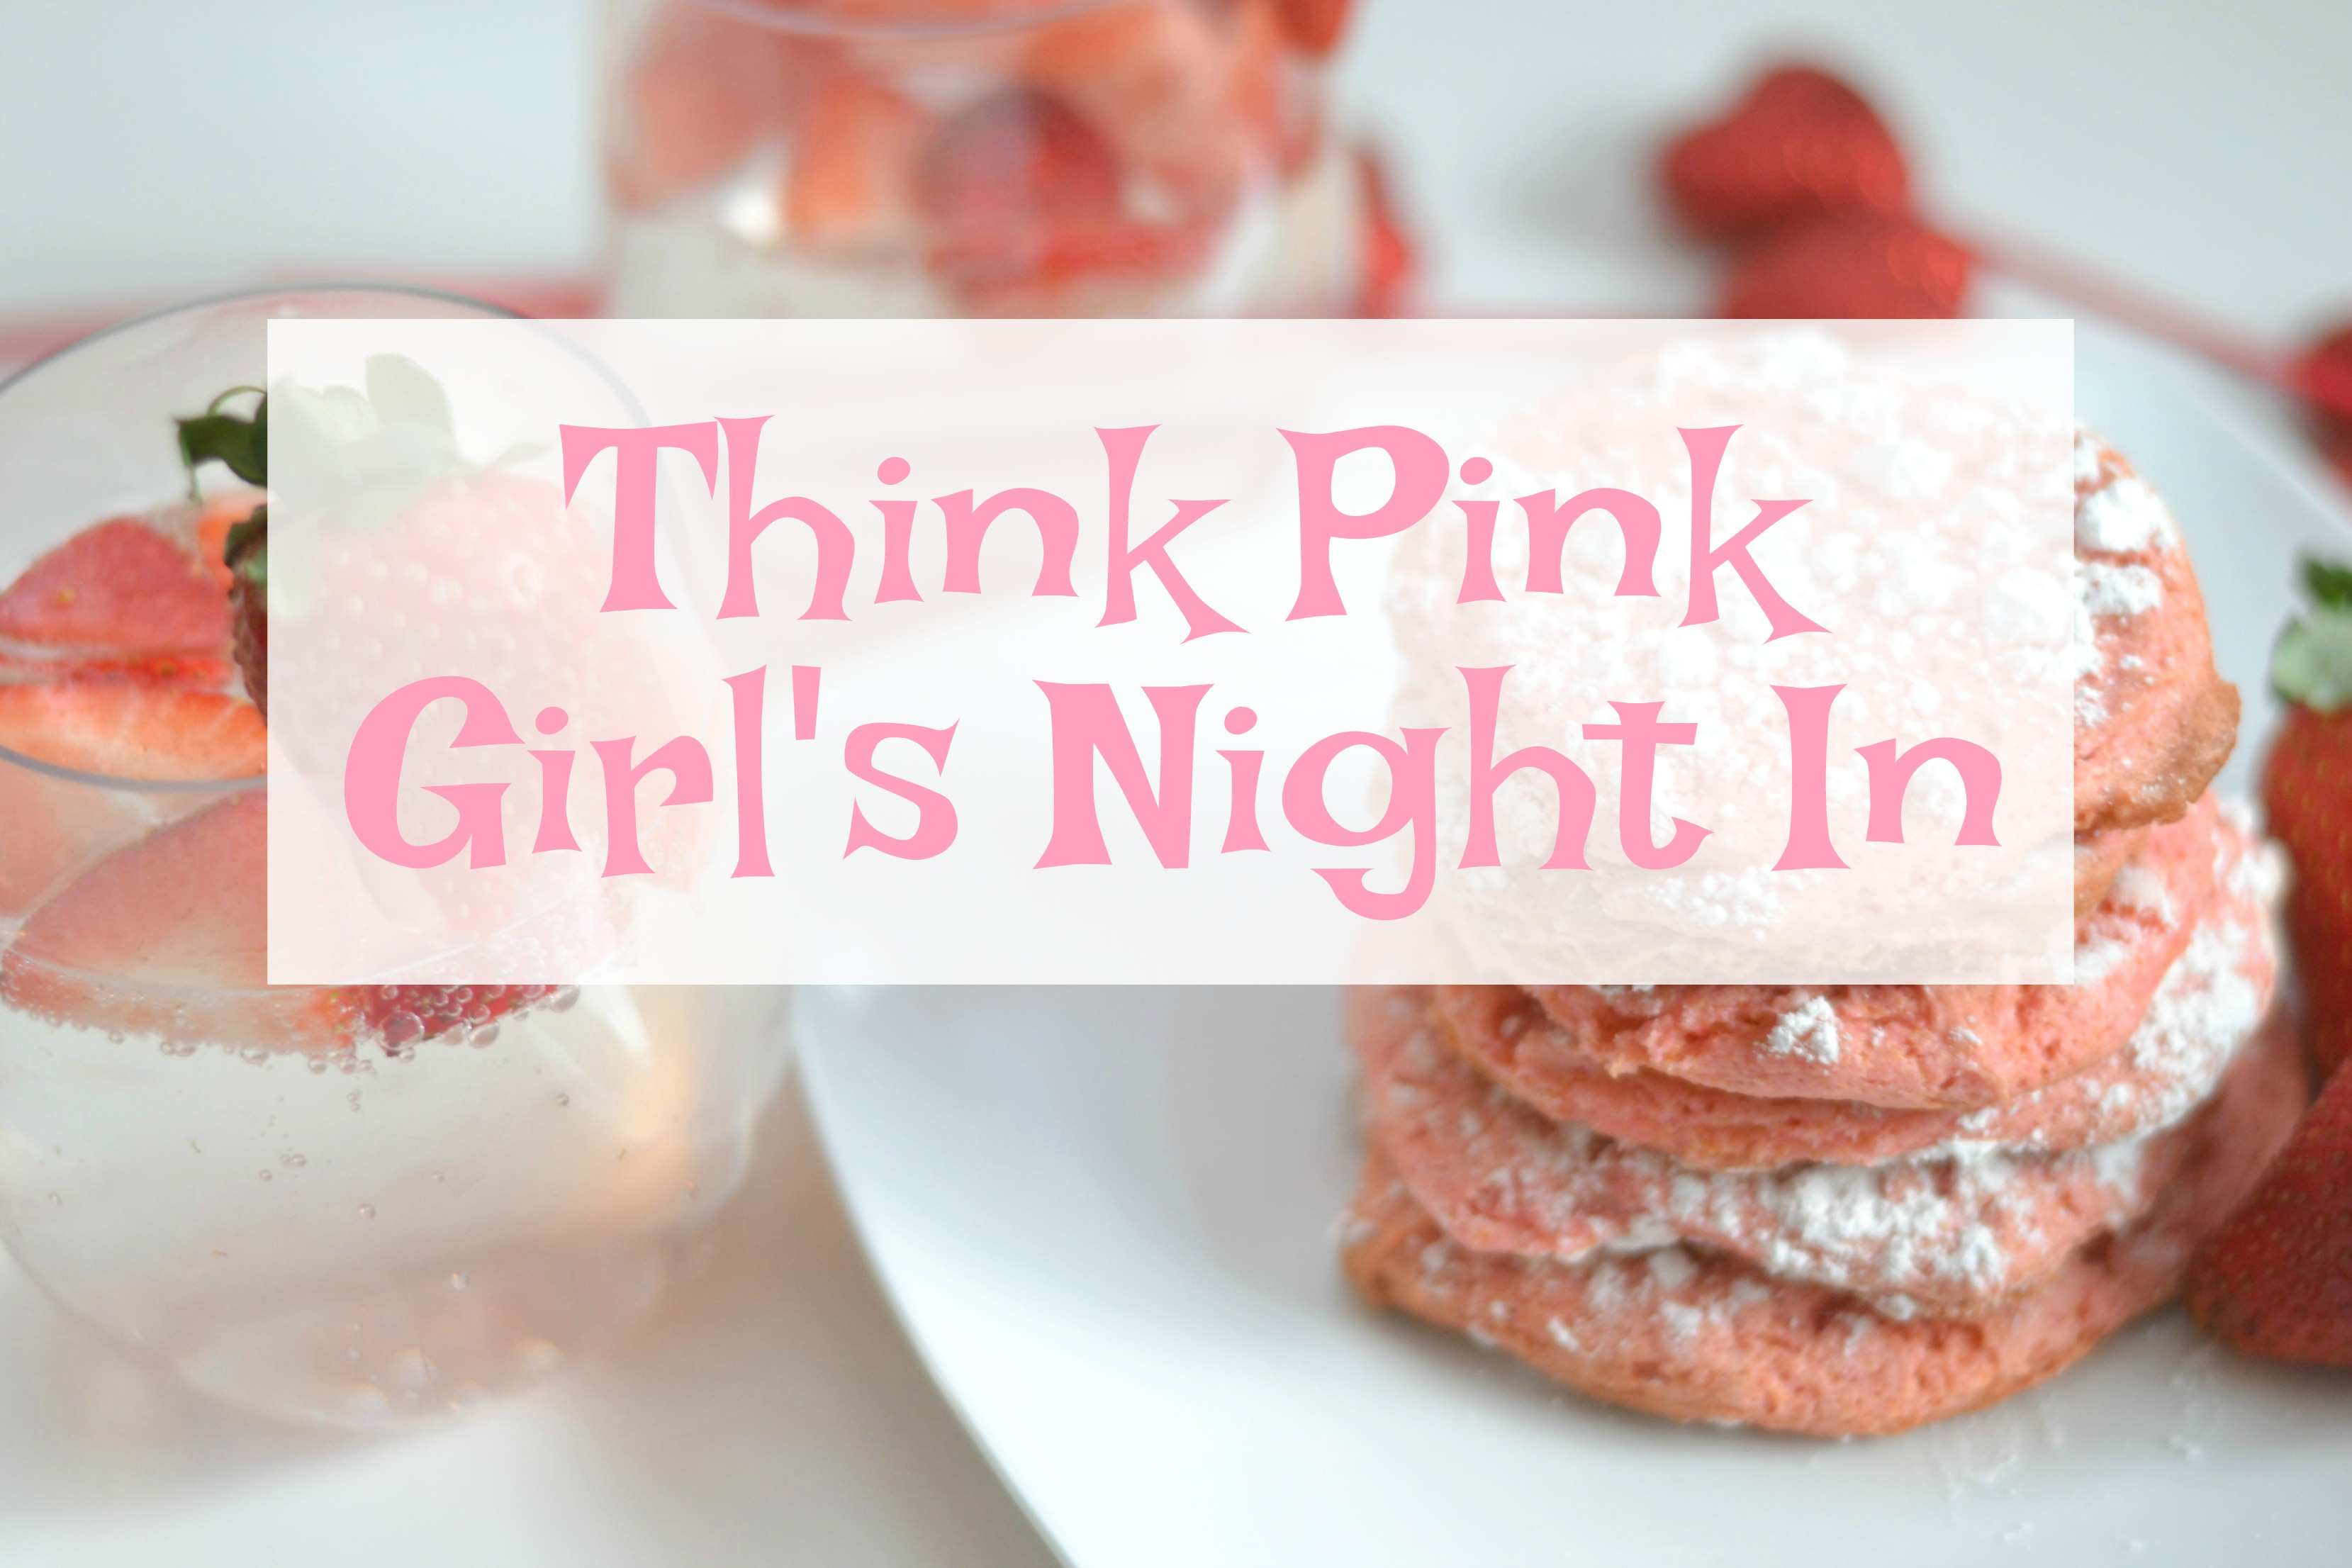 recipes using 7UP, 7UP recipes, 7UP cookie recipe, 7UP Strawberry Fizz, 7UP drinks, ideas for girl's night in, girl's night in party, 7UP Strawberry Crinkle Cookies, crinkle cookie recipes, baking recipes with soda, easy dessert recipes, desserts, strawberry dessert recipes, strawberry and lime desserts